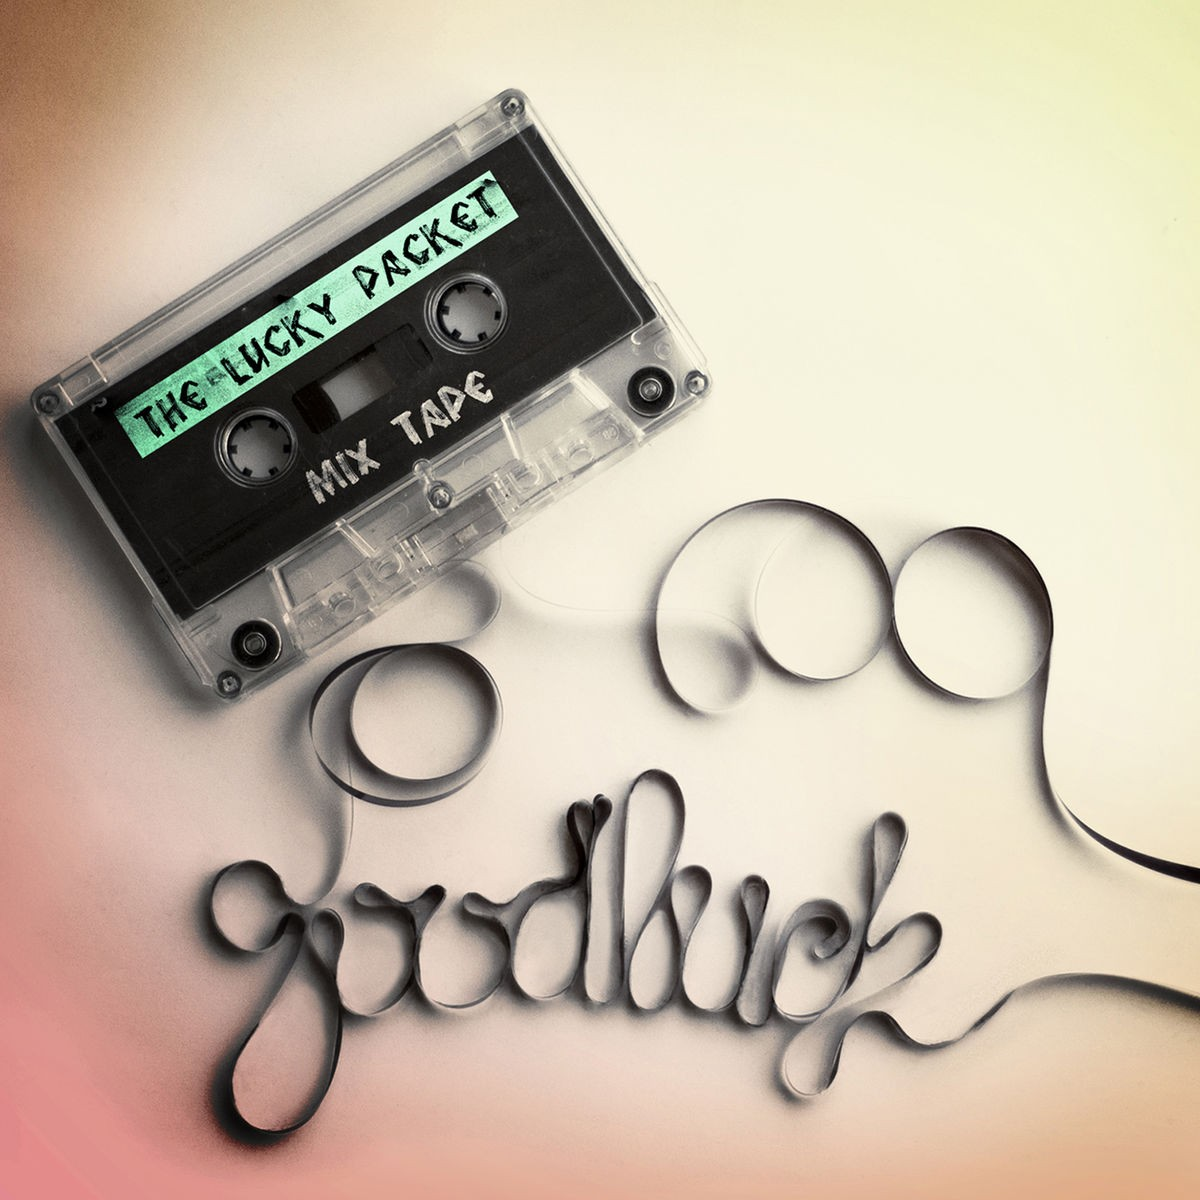 Goodluck - The Lucky Packet Mix Tape CD - CDJUST 566